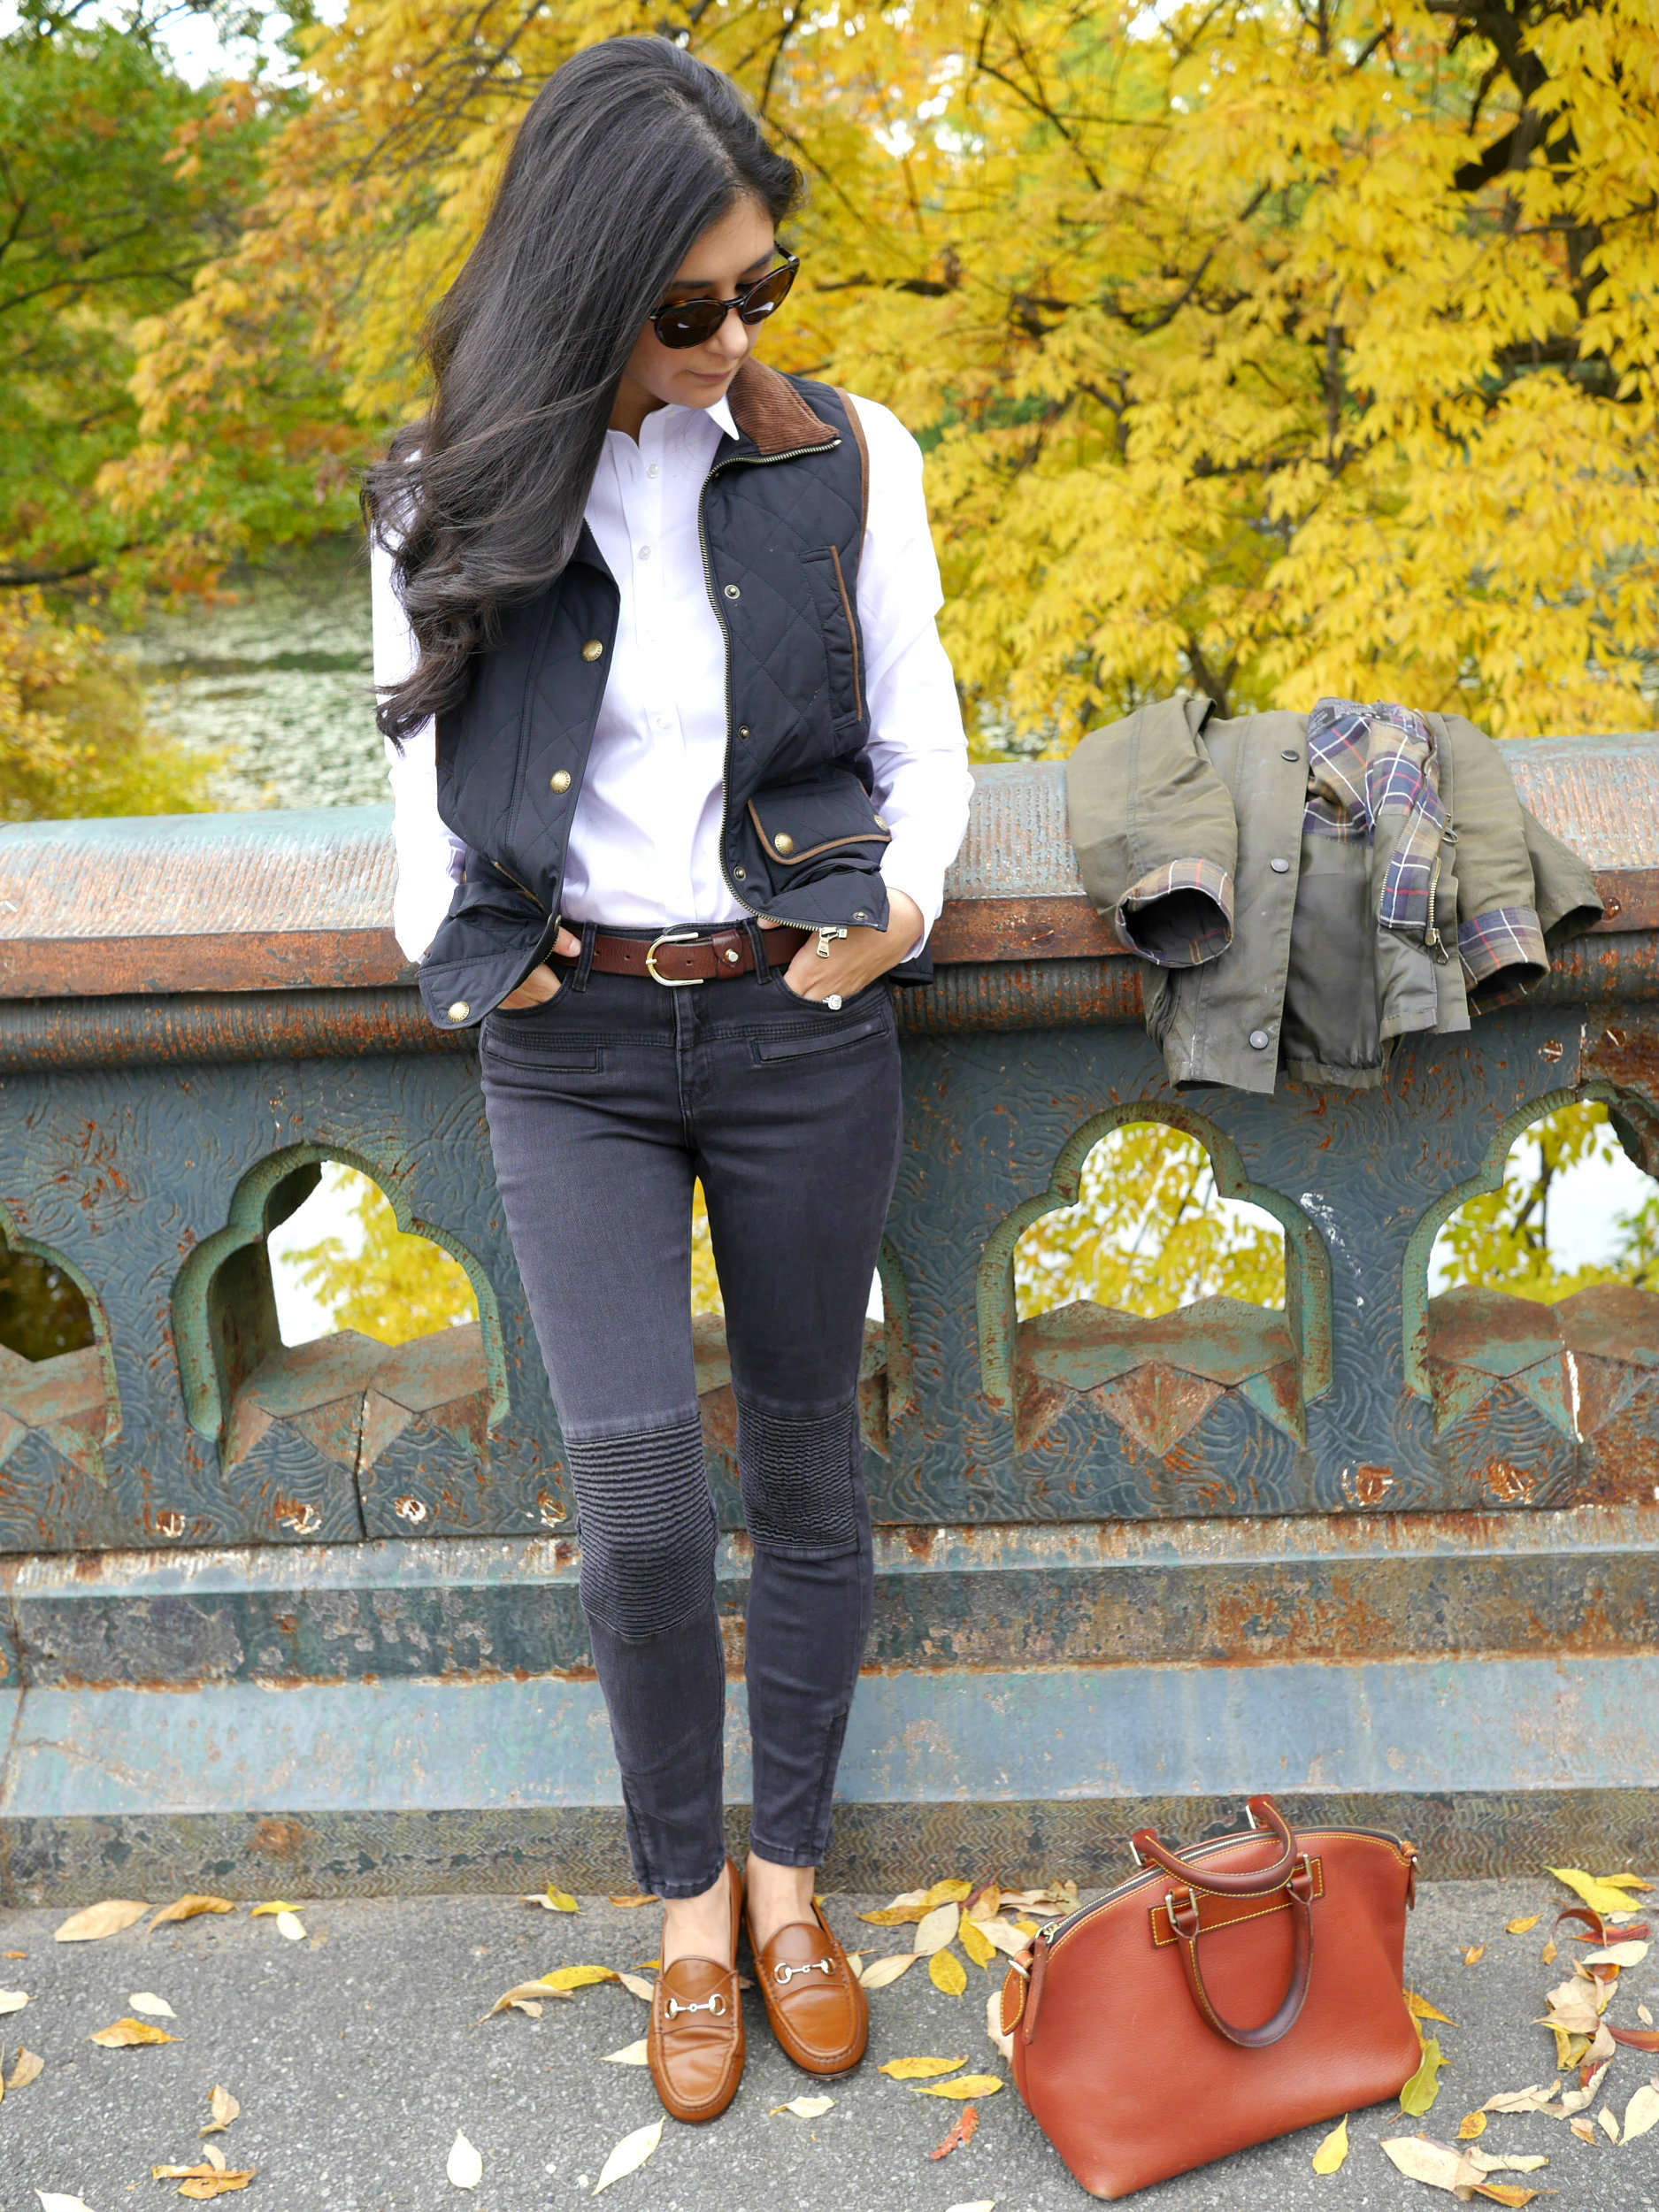 Ralph Lauren Quilted Vest Zara Jeans Gucci Horsebit Loafers Dooney and Bourke Purse Brooks Brothers Shirt Persol Sunglasses